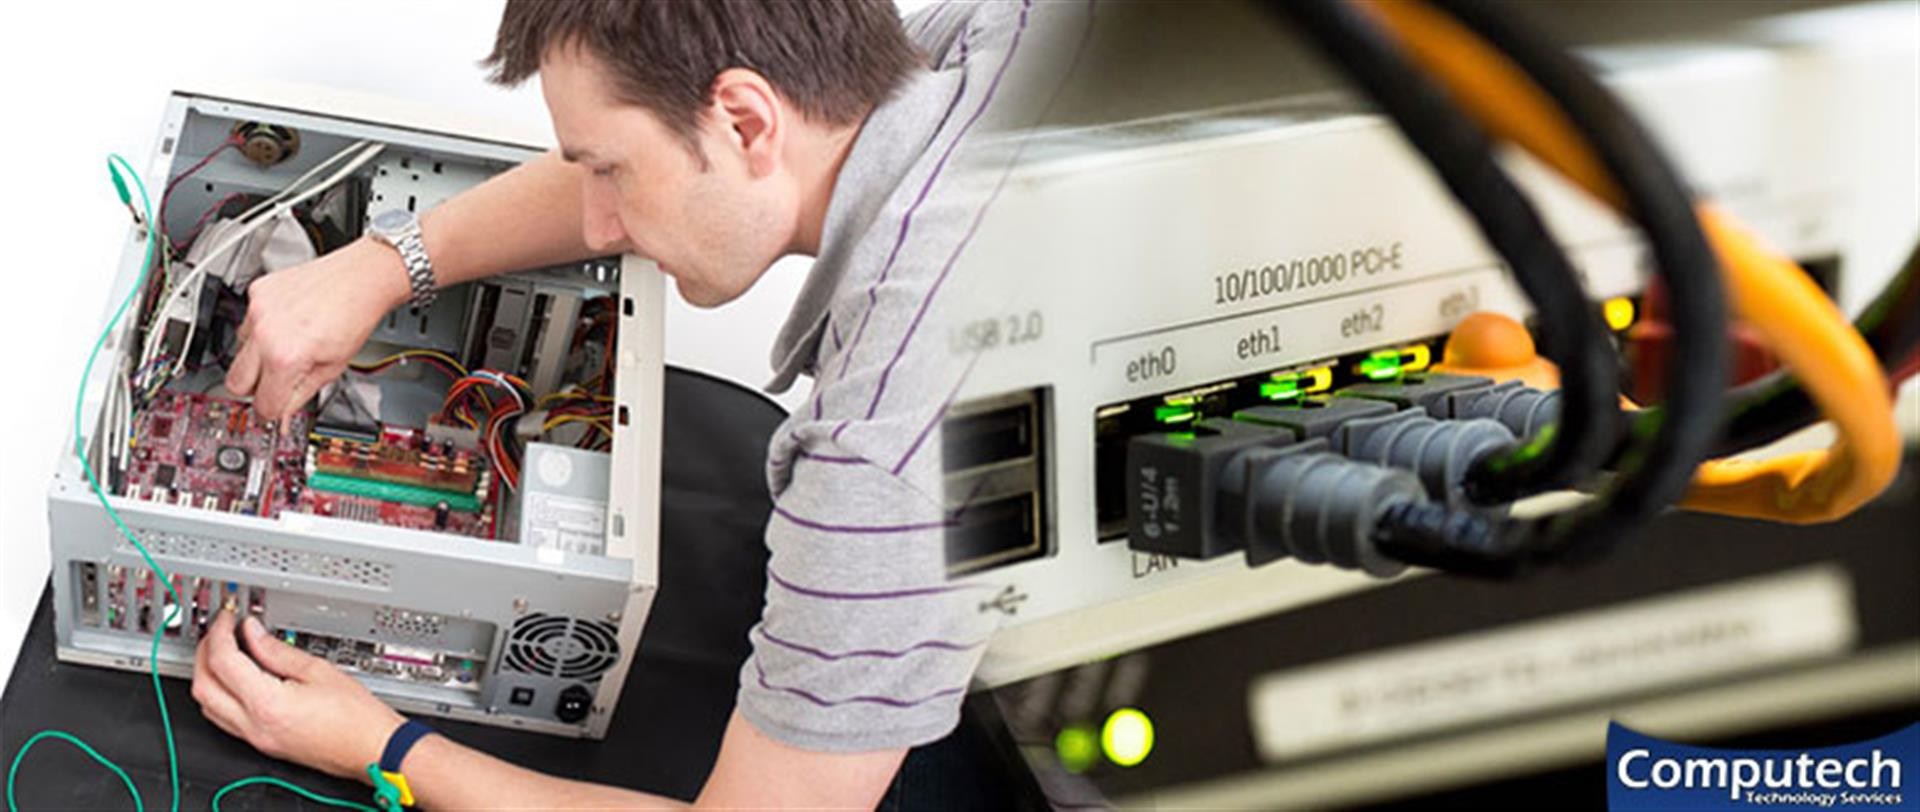 Dublin Virginia On-Site Computer & Printer Repairs, Networking, Voice & Data Cabling Services